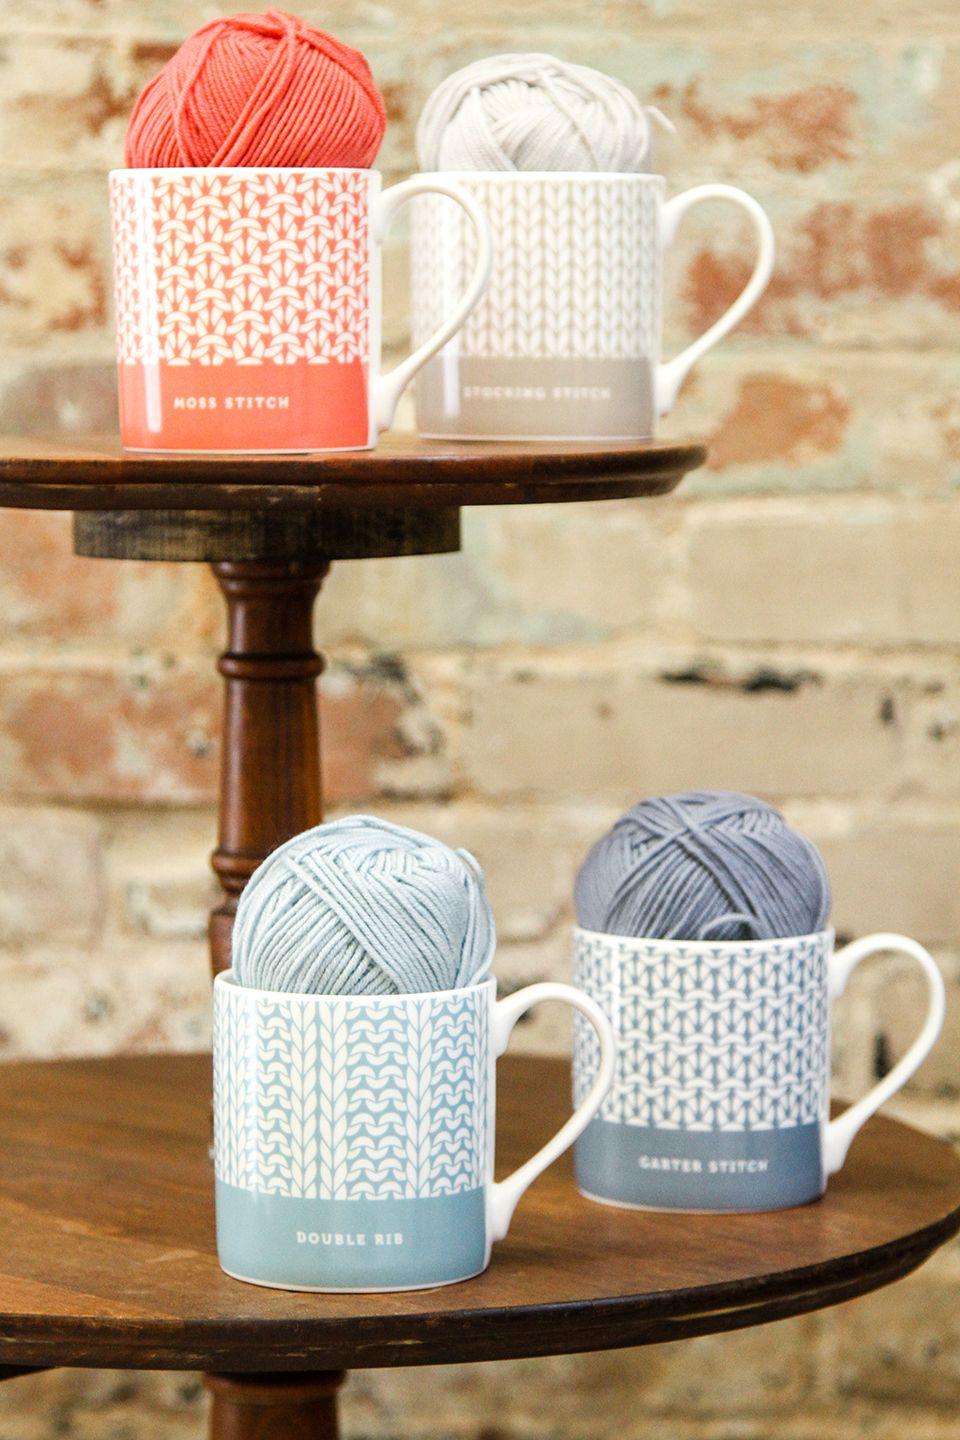 Stitch Mugs from Debbie Bliss feature your favorite stitch patterns ...